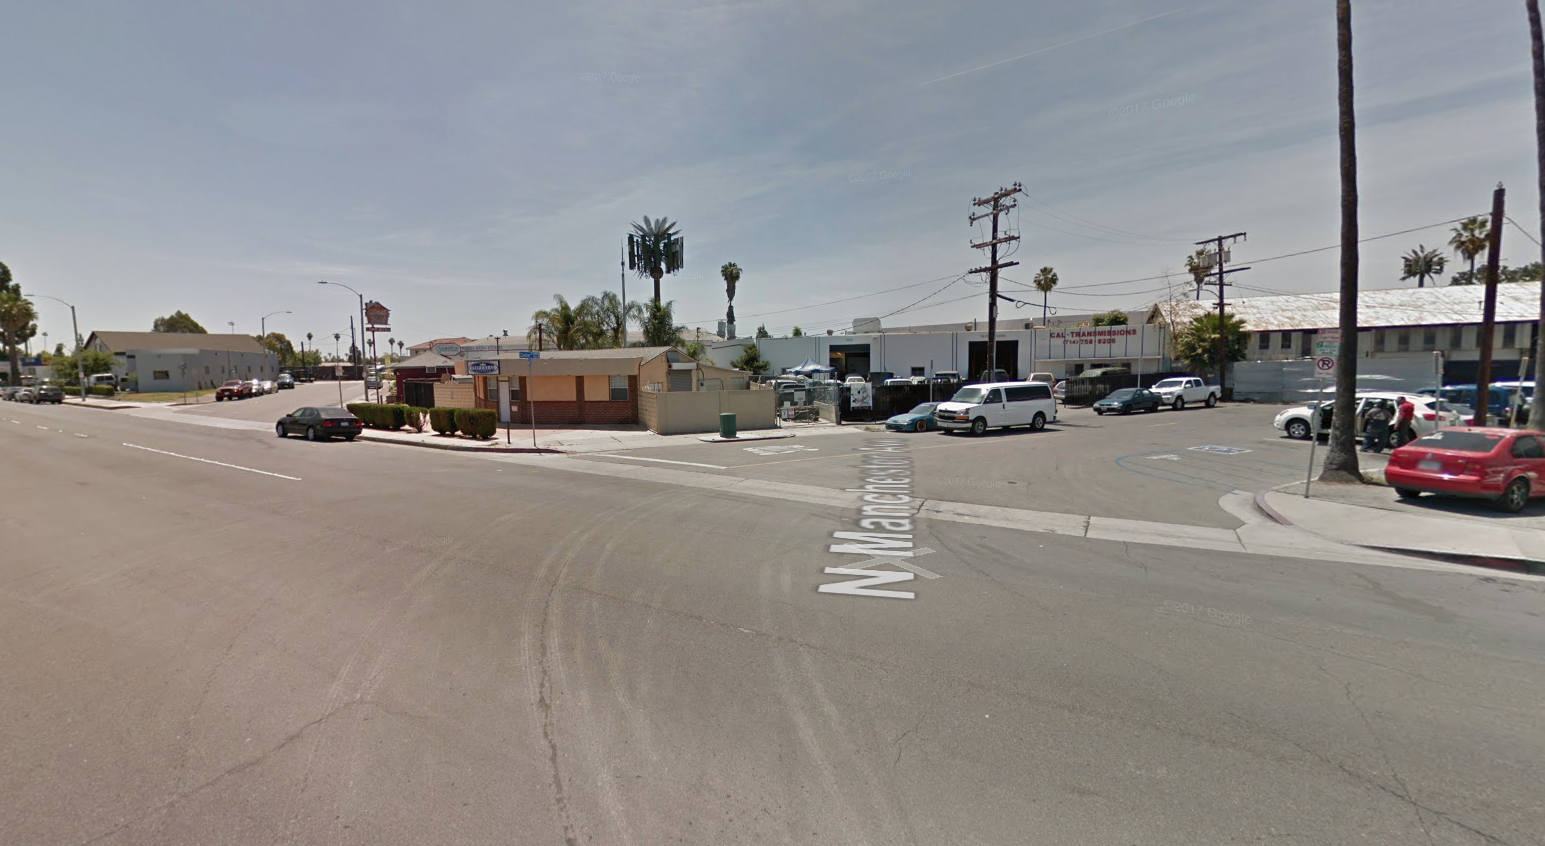 The 1500 block of West Center Street in Anaheim is seen in a Google Maps image.